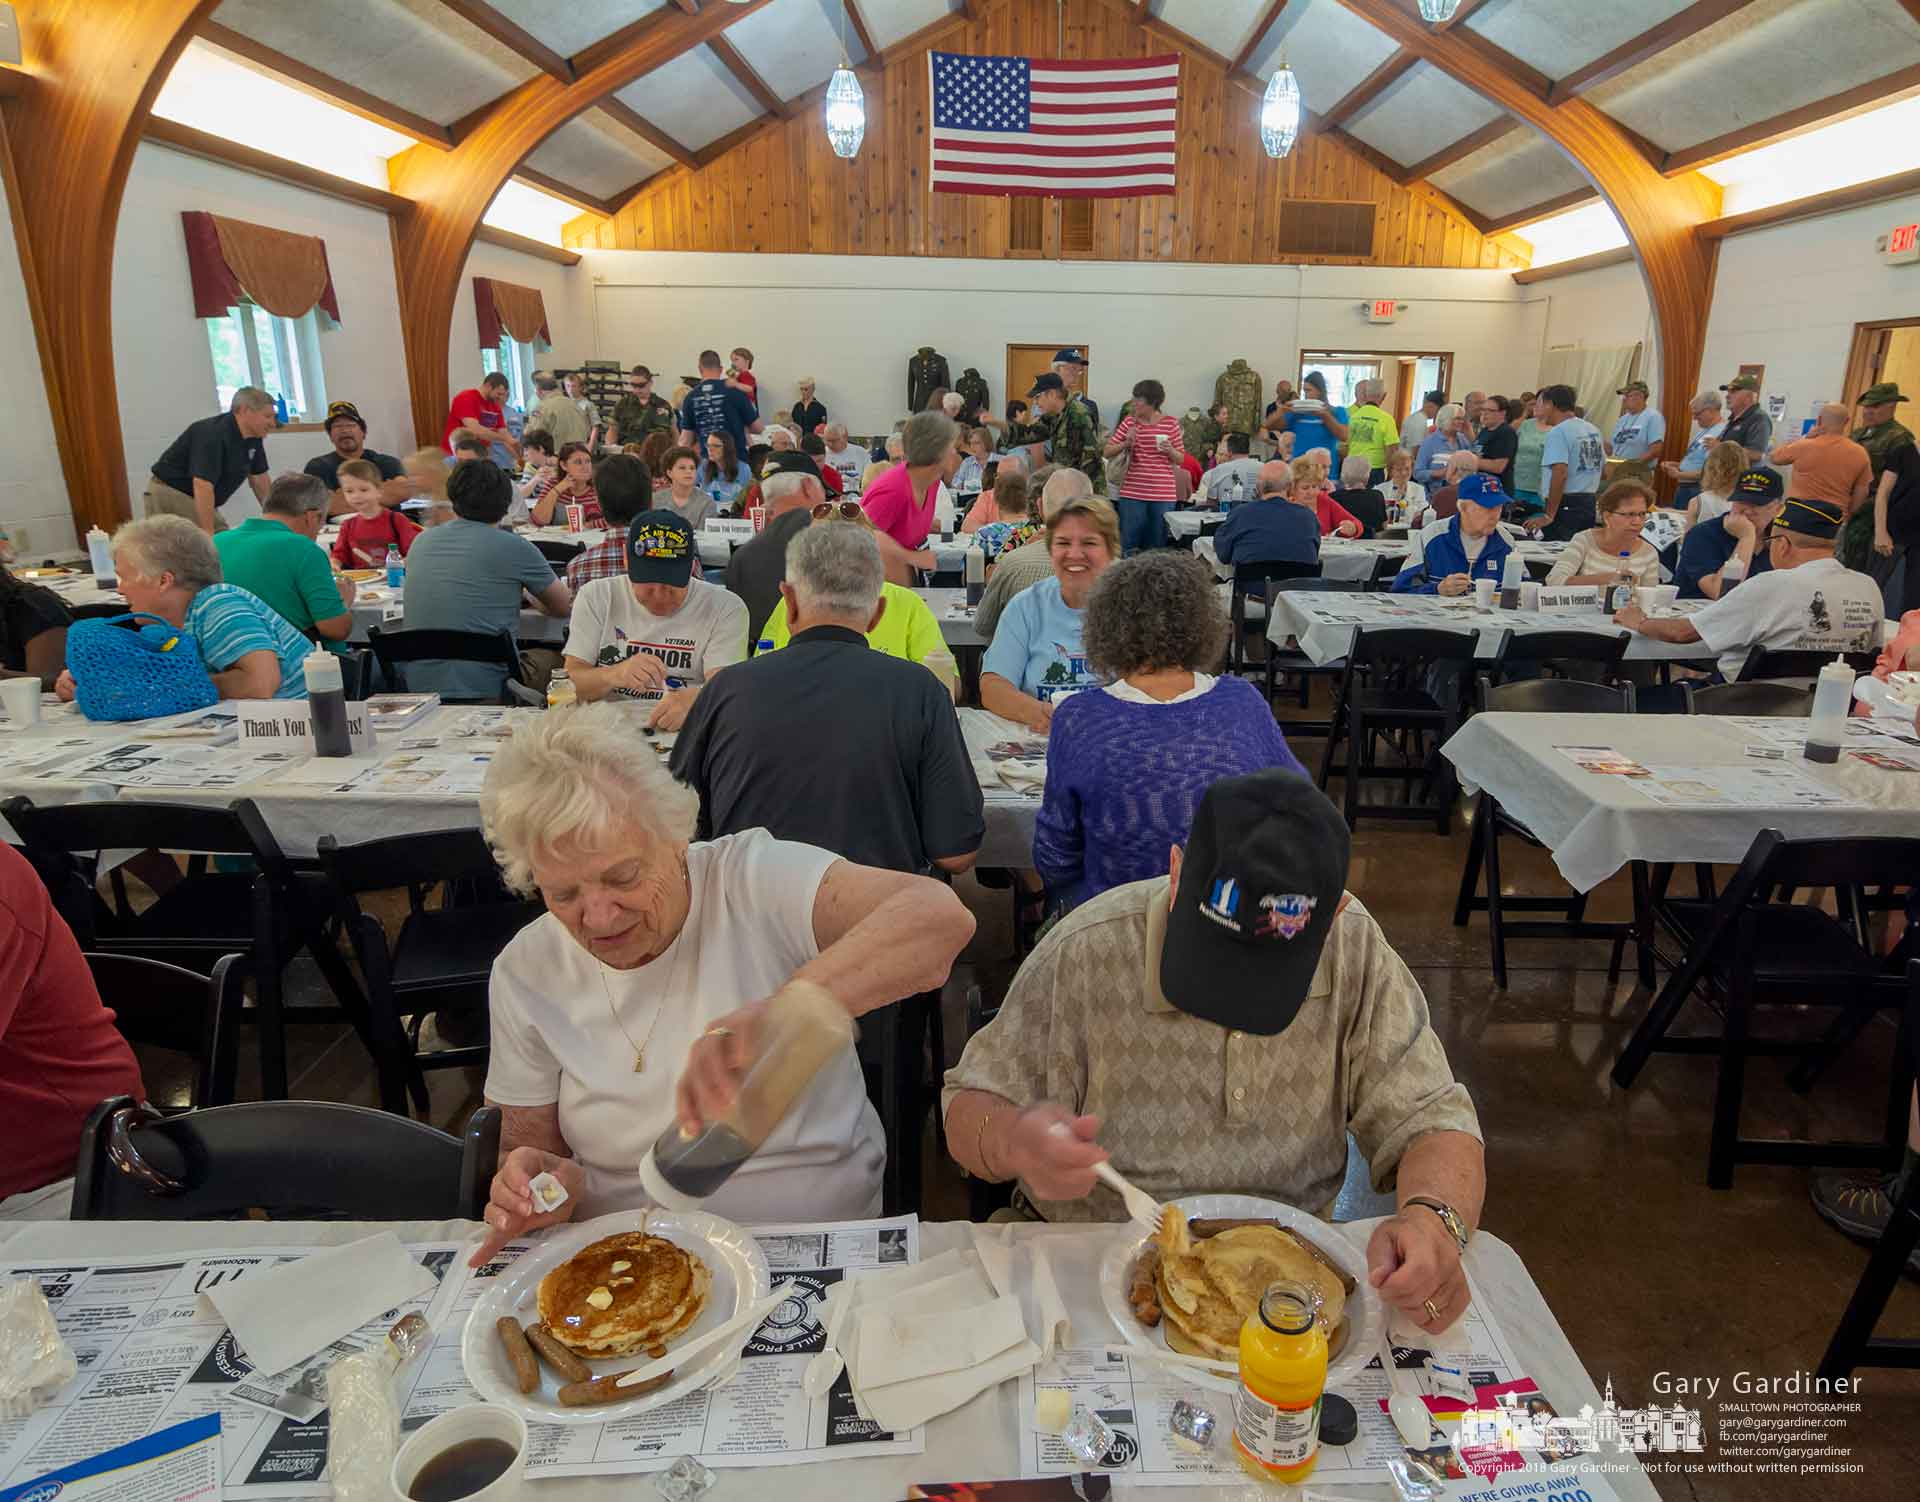 Pancakes and sausage was the morning fare for the Honor Flight pancake breakfast fundraiser at the American Legion Hall. My Final Photo for June 23, 2018.